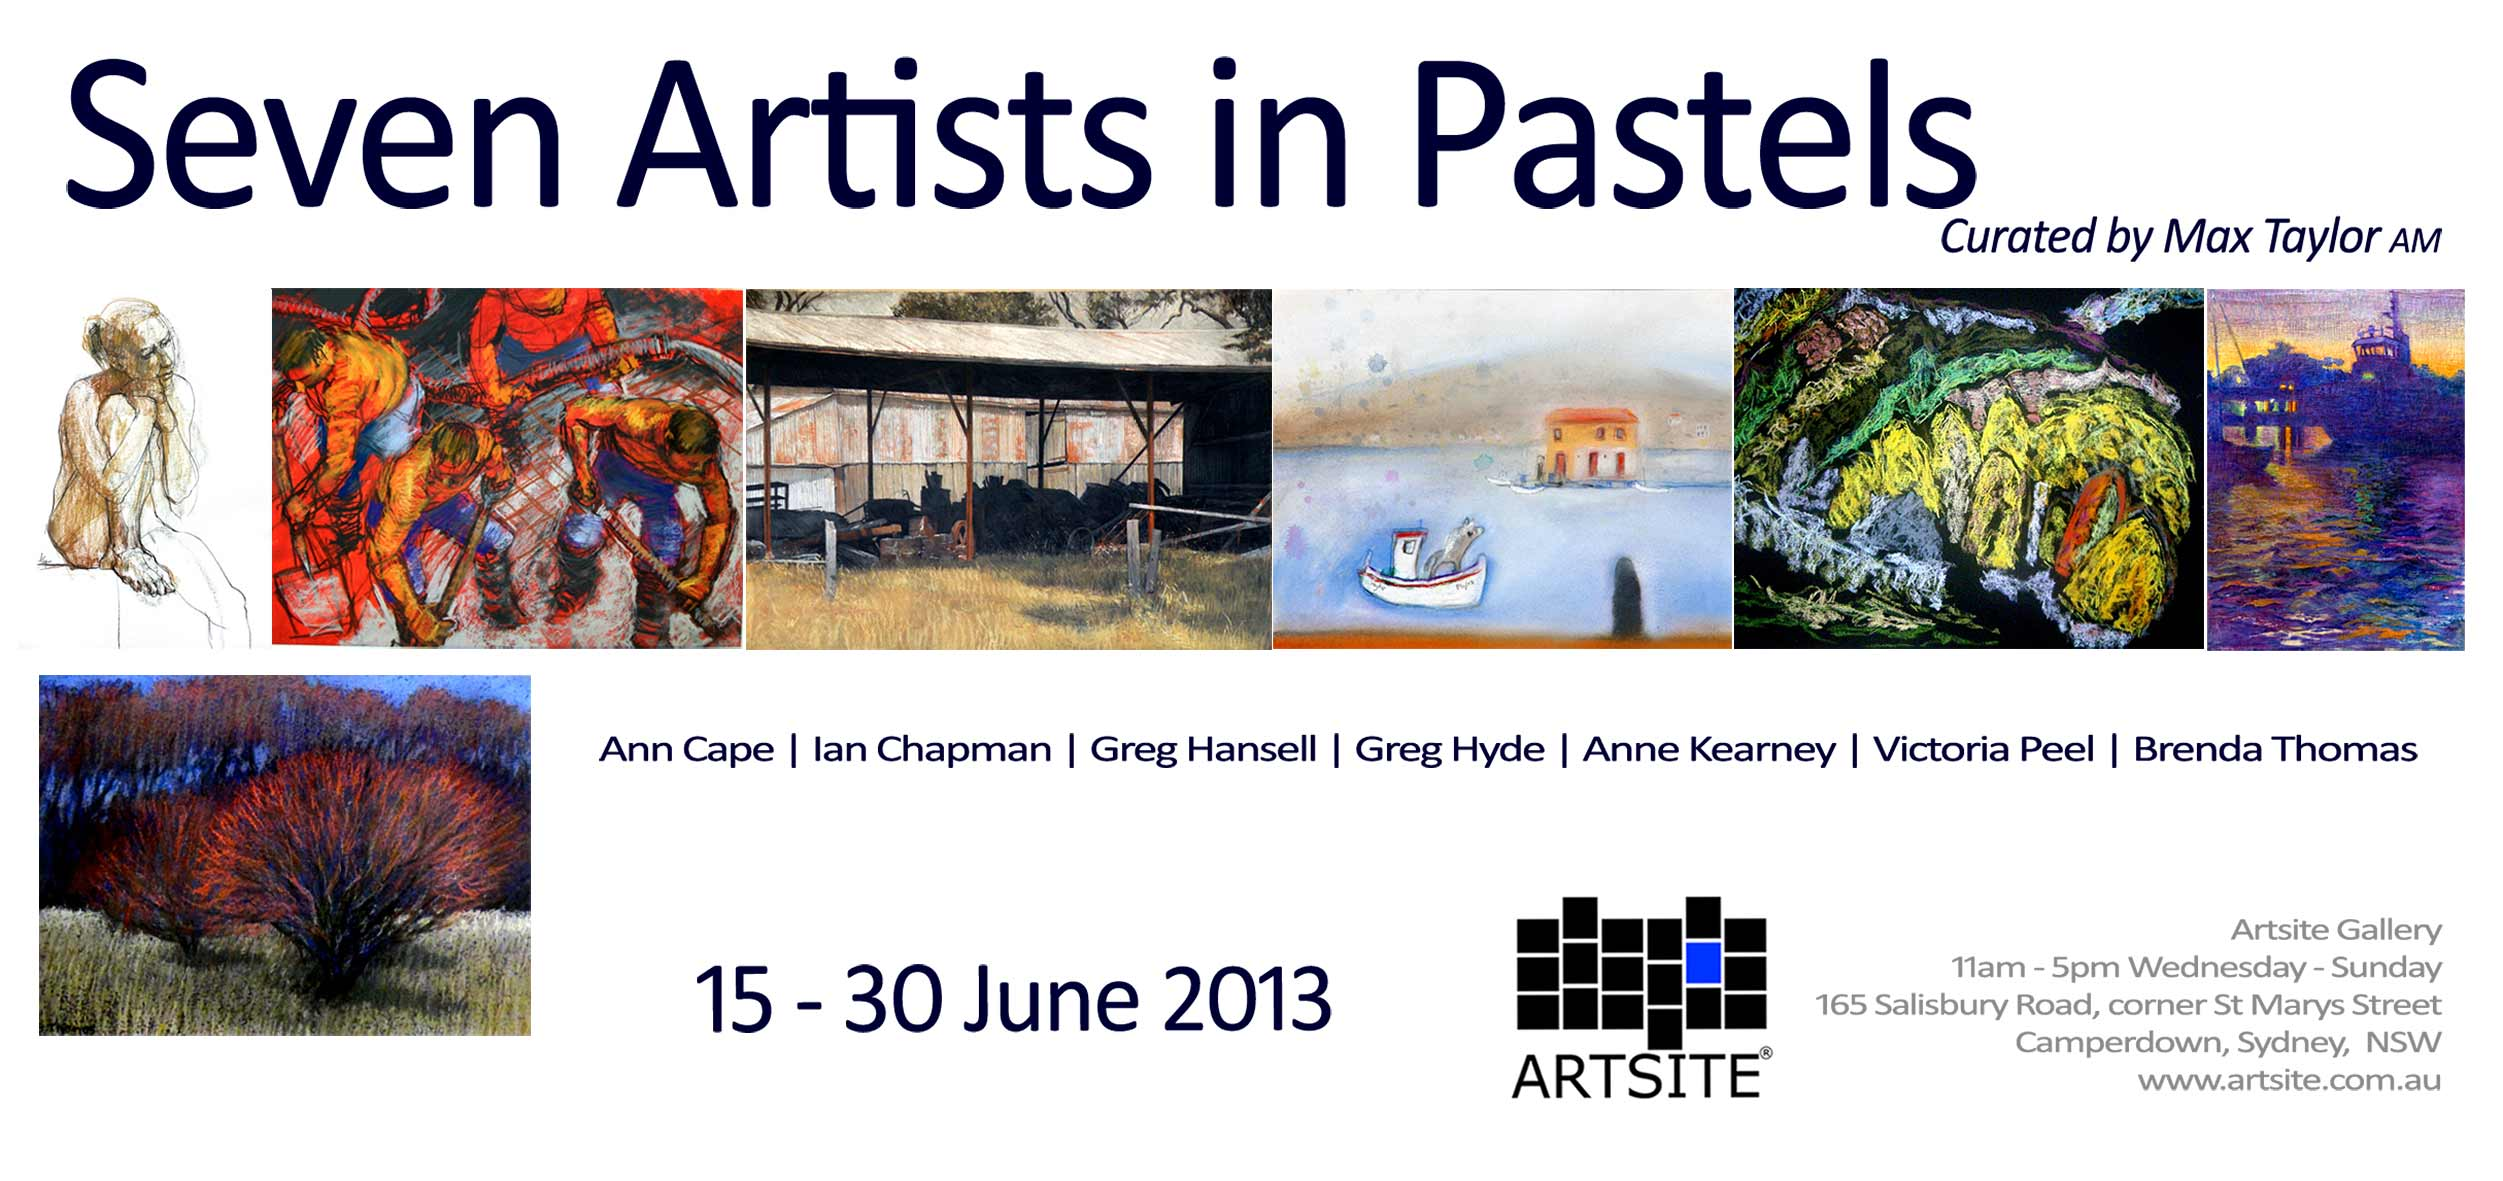 Seven Artists In Pastel Curated By Max Taylor AM - Artsite Gallery  15-30 June 2013 - with Ann Cape | Ian Chapman | Greg Hansell | Greg Hyde | Anne Kearney | Victoria Peel | Brenda Thomas.